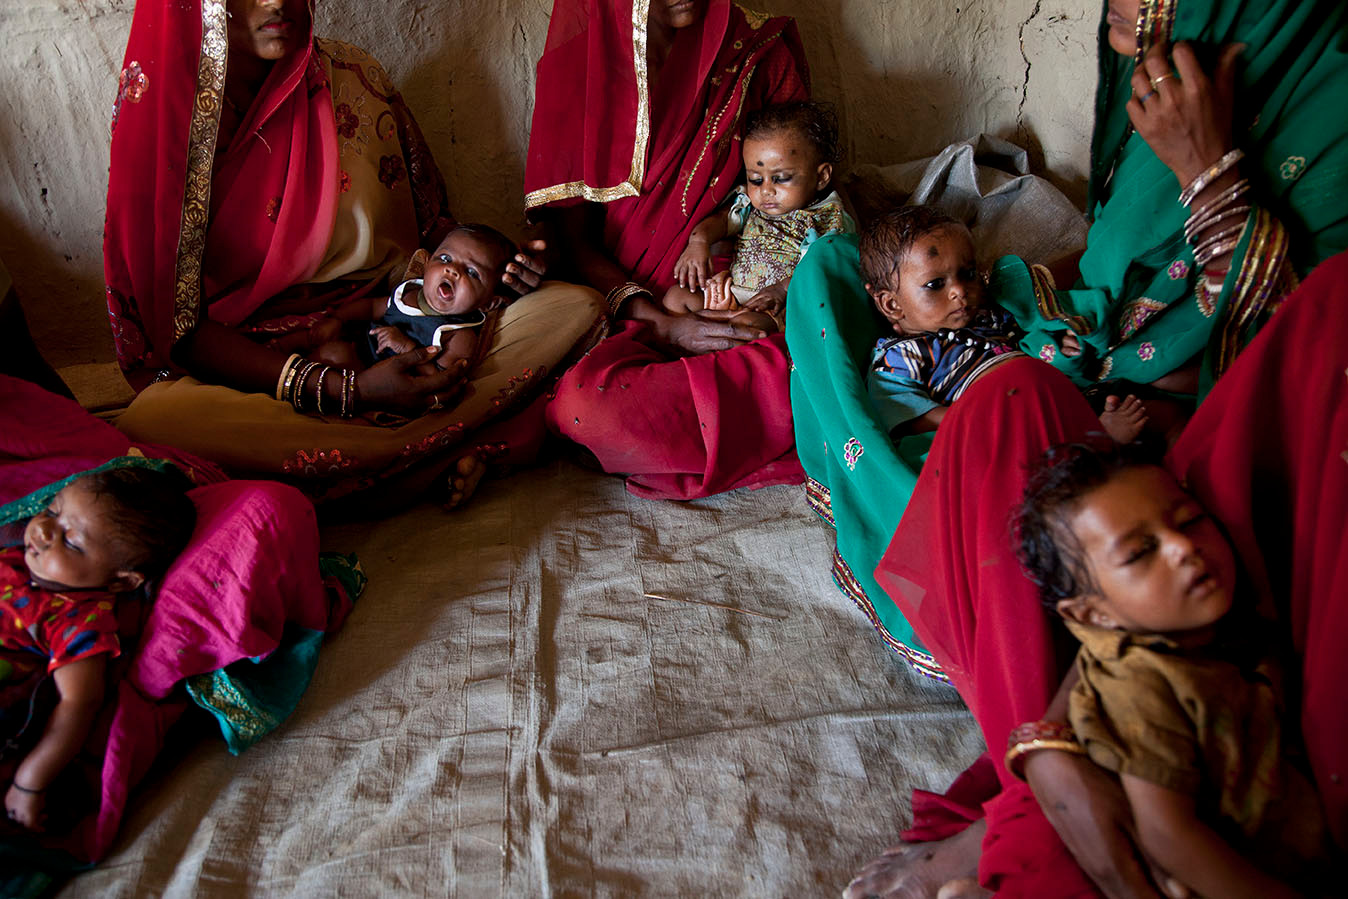 Beneficiaries wait at the Anganwadi Centre for routine immunization in Roti Mushahari village, Saharsa district, Bihar, India, 2013.